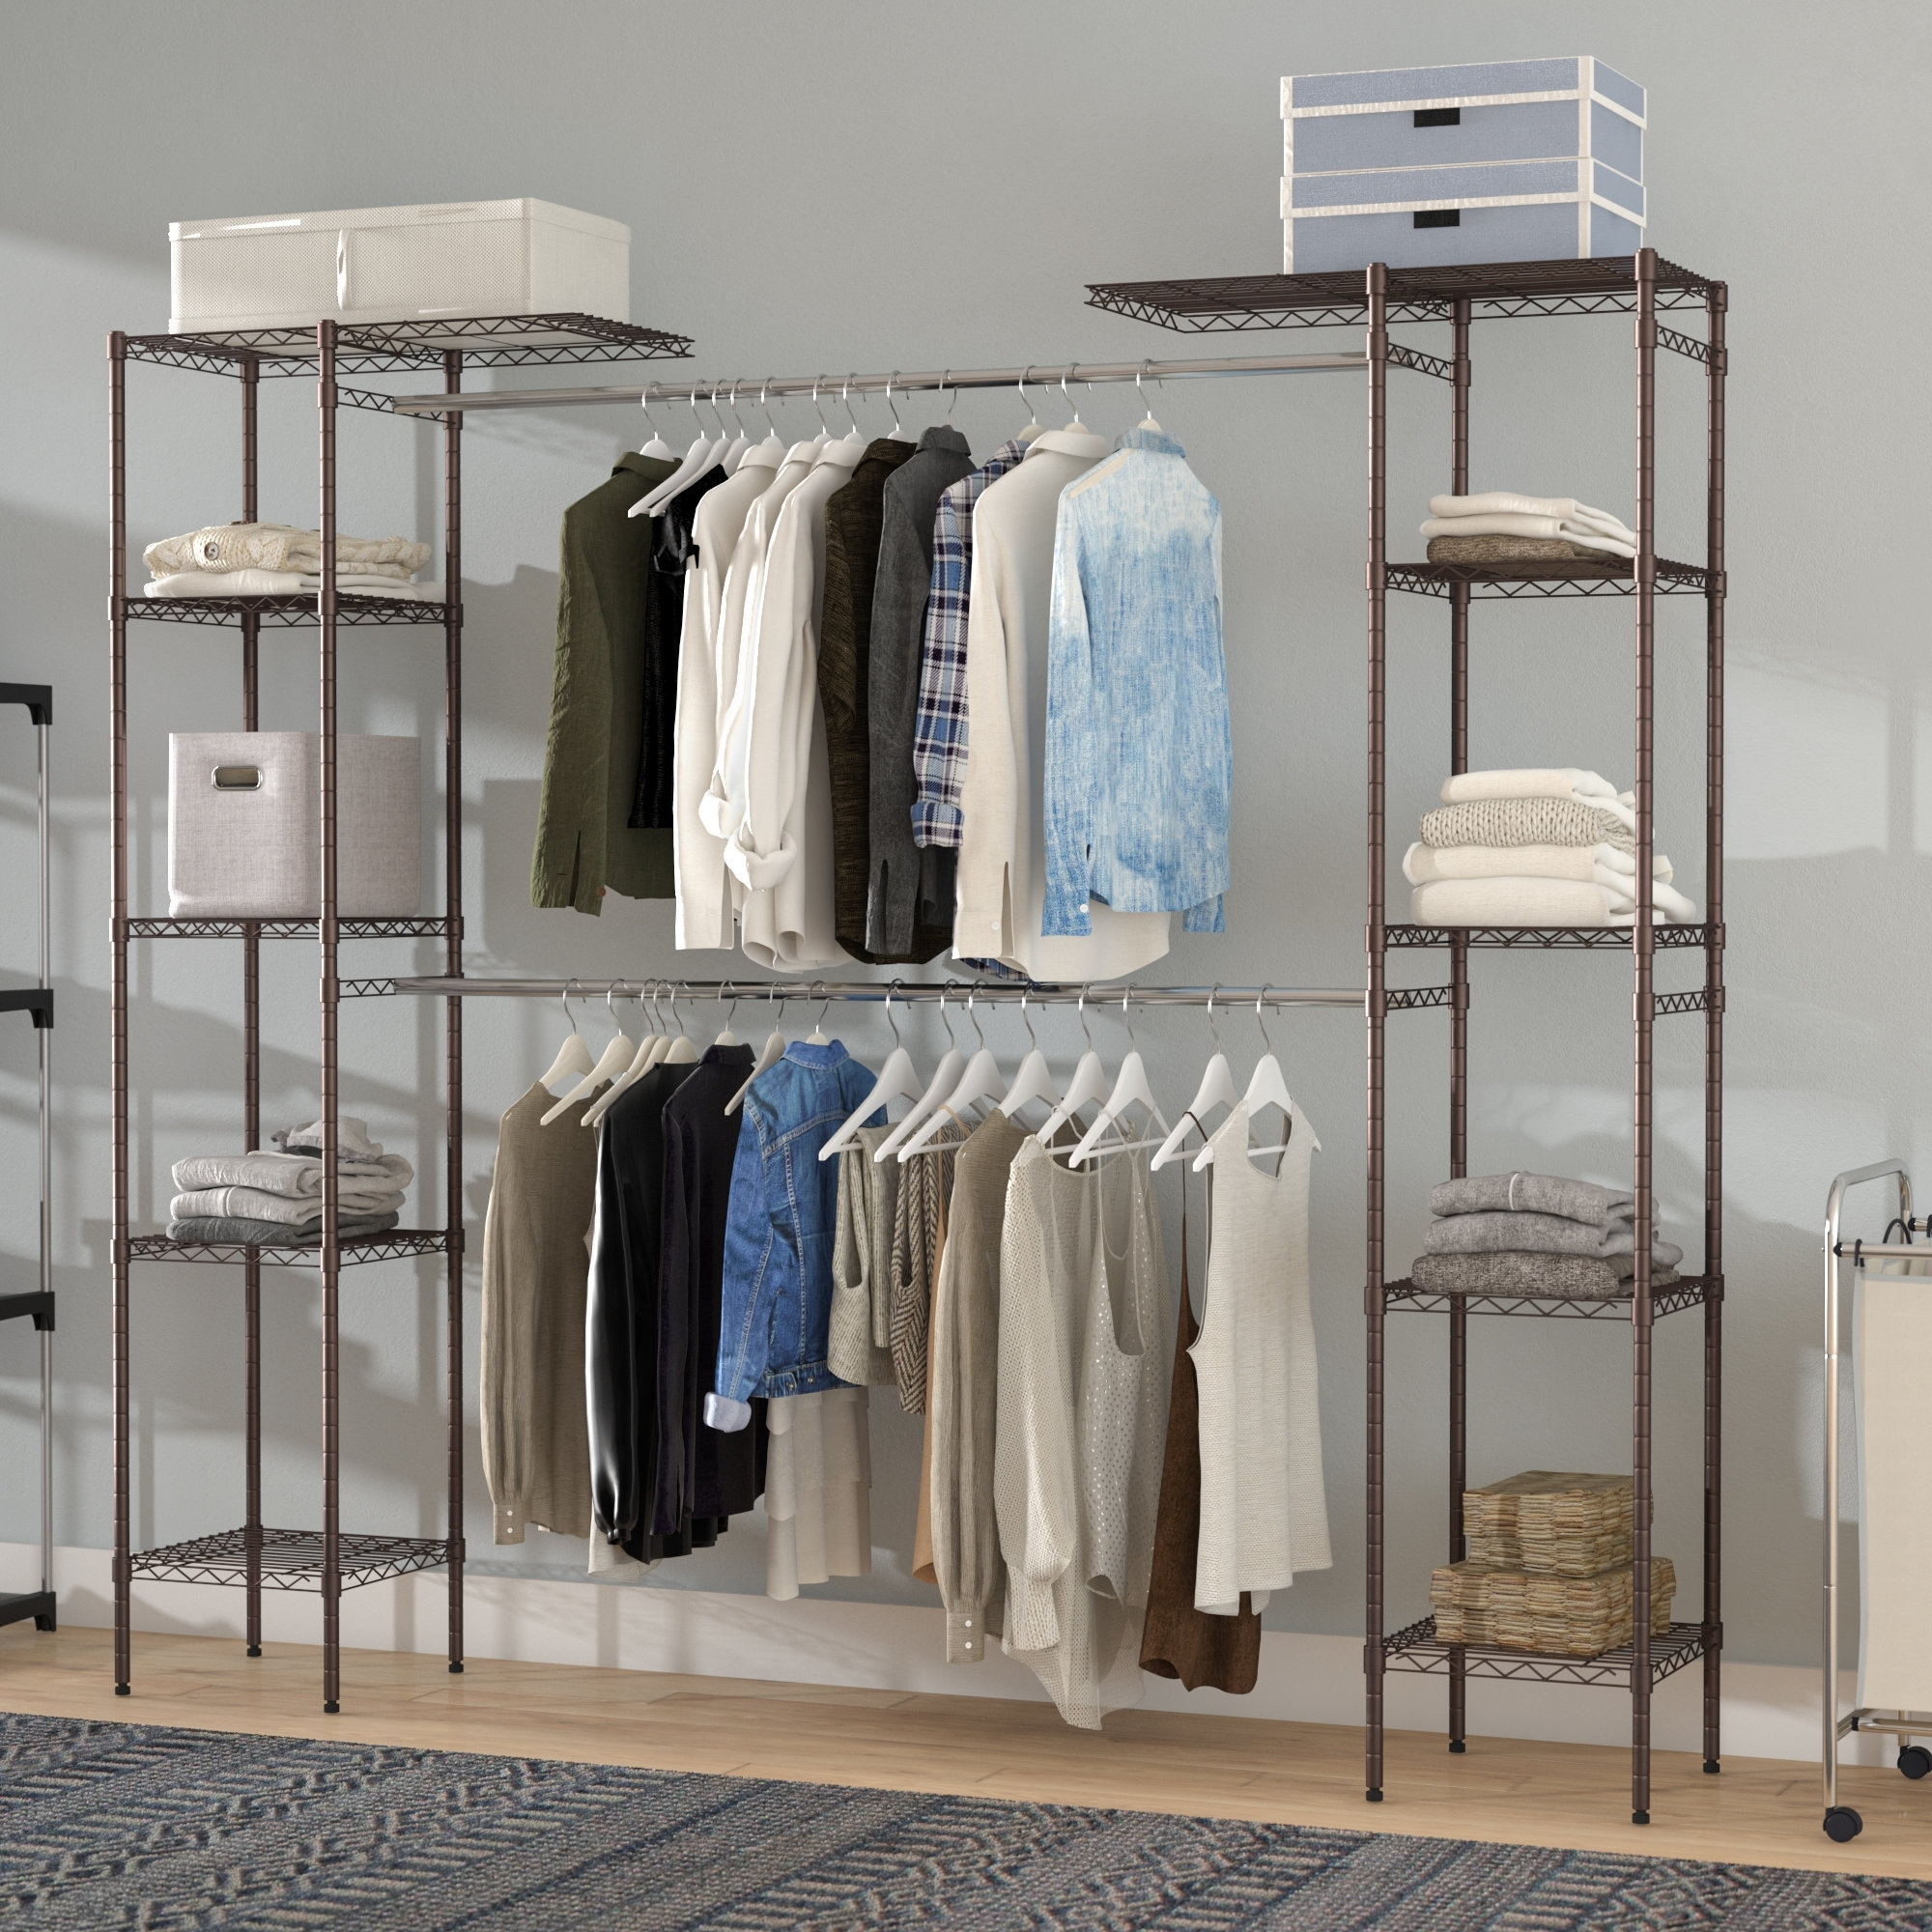 Double Hanging Wardrobe Closet (View 14 of 15)